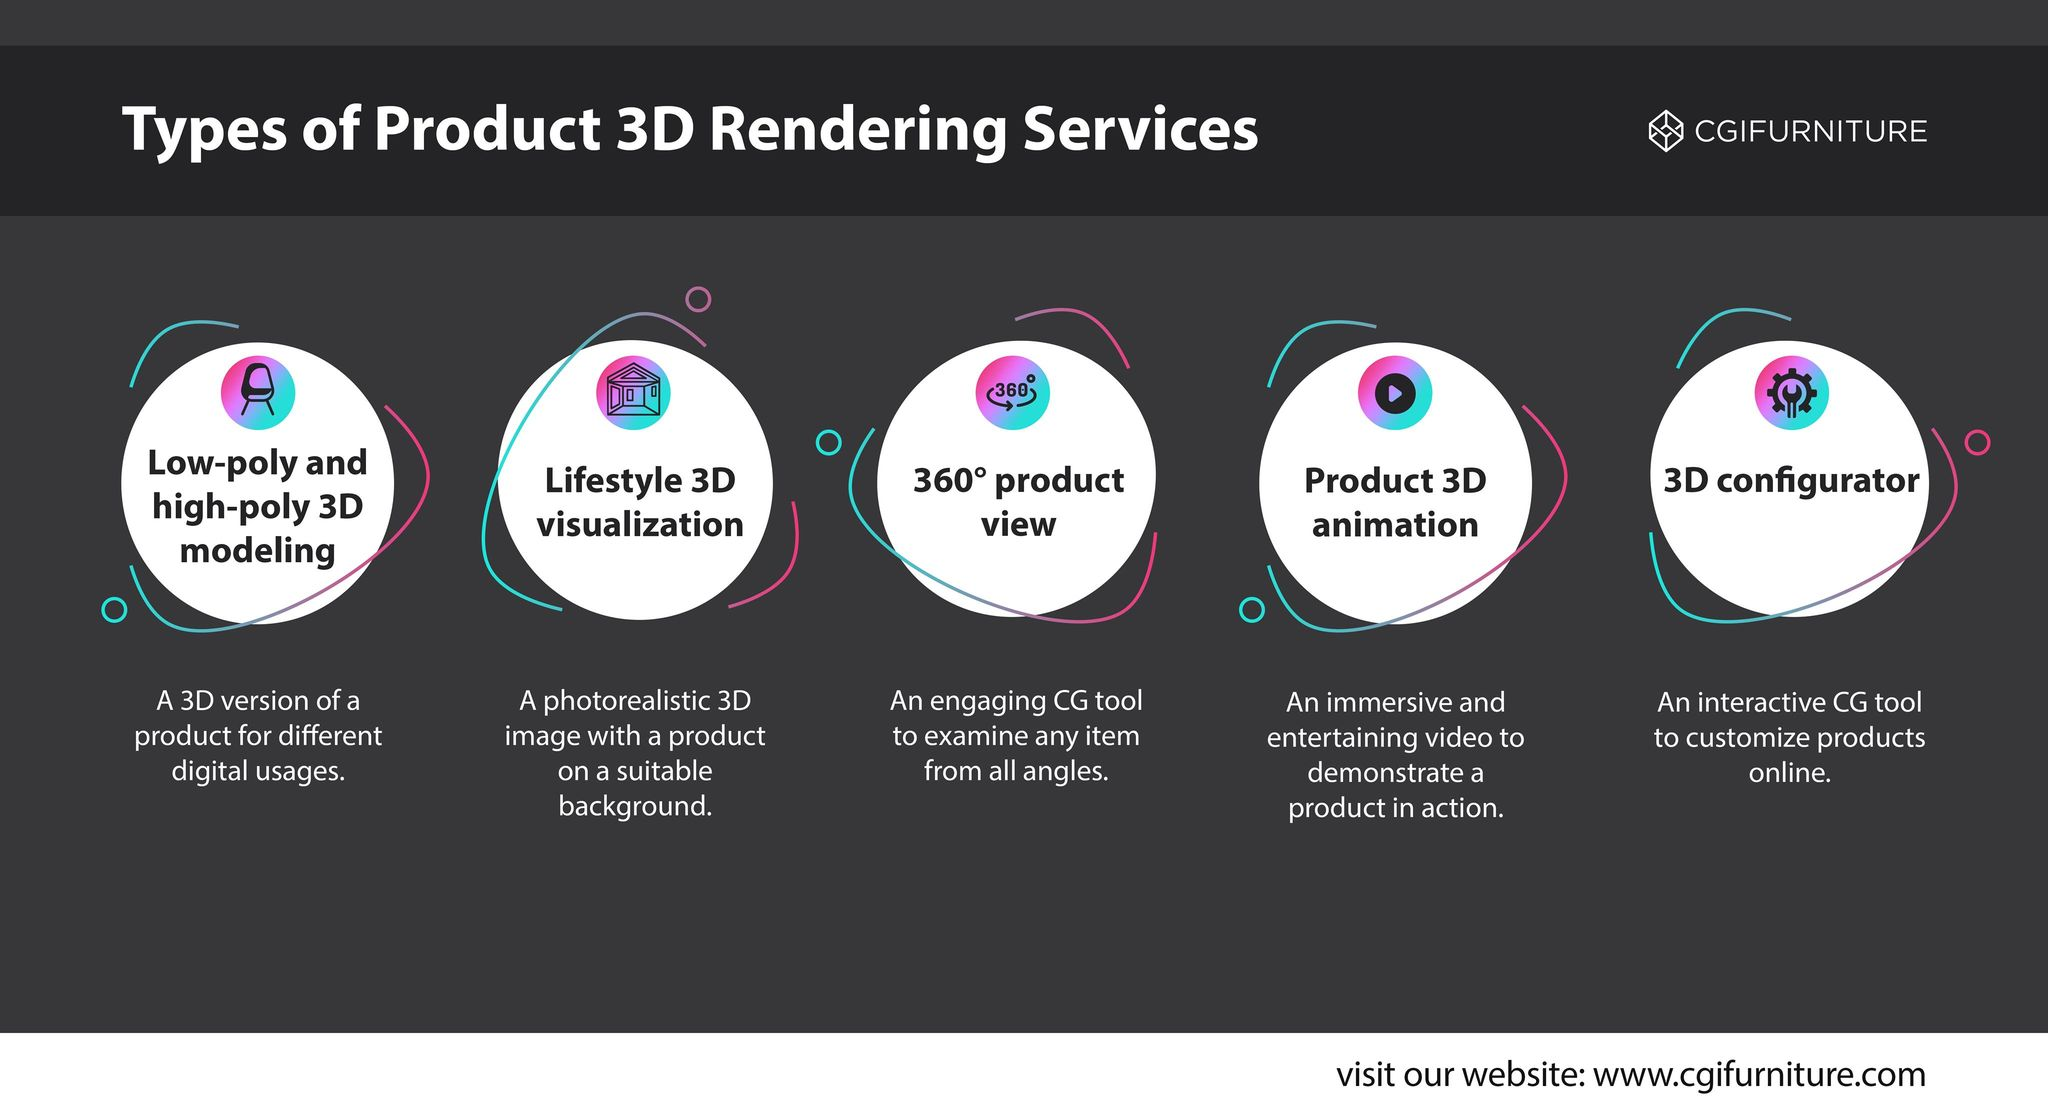 image - Types of Product 3D Rendering Services